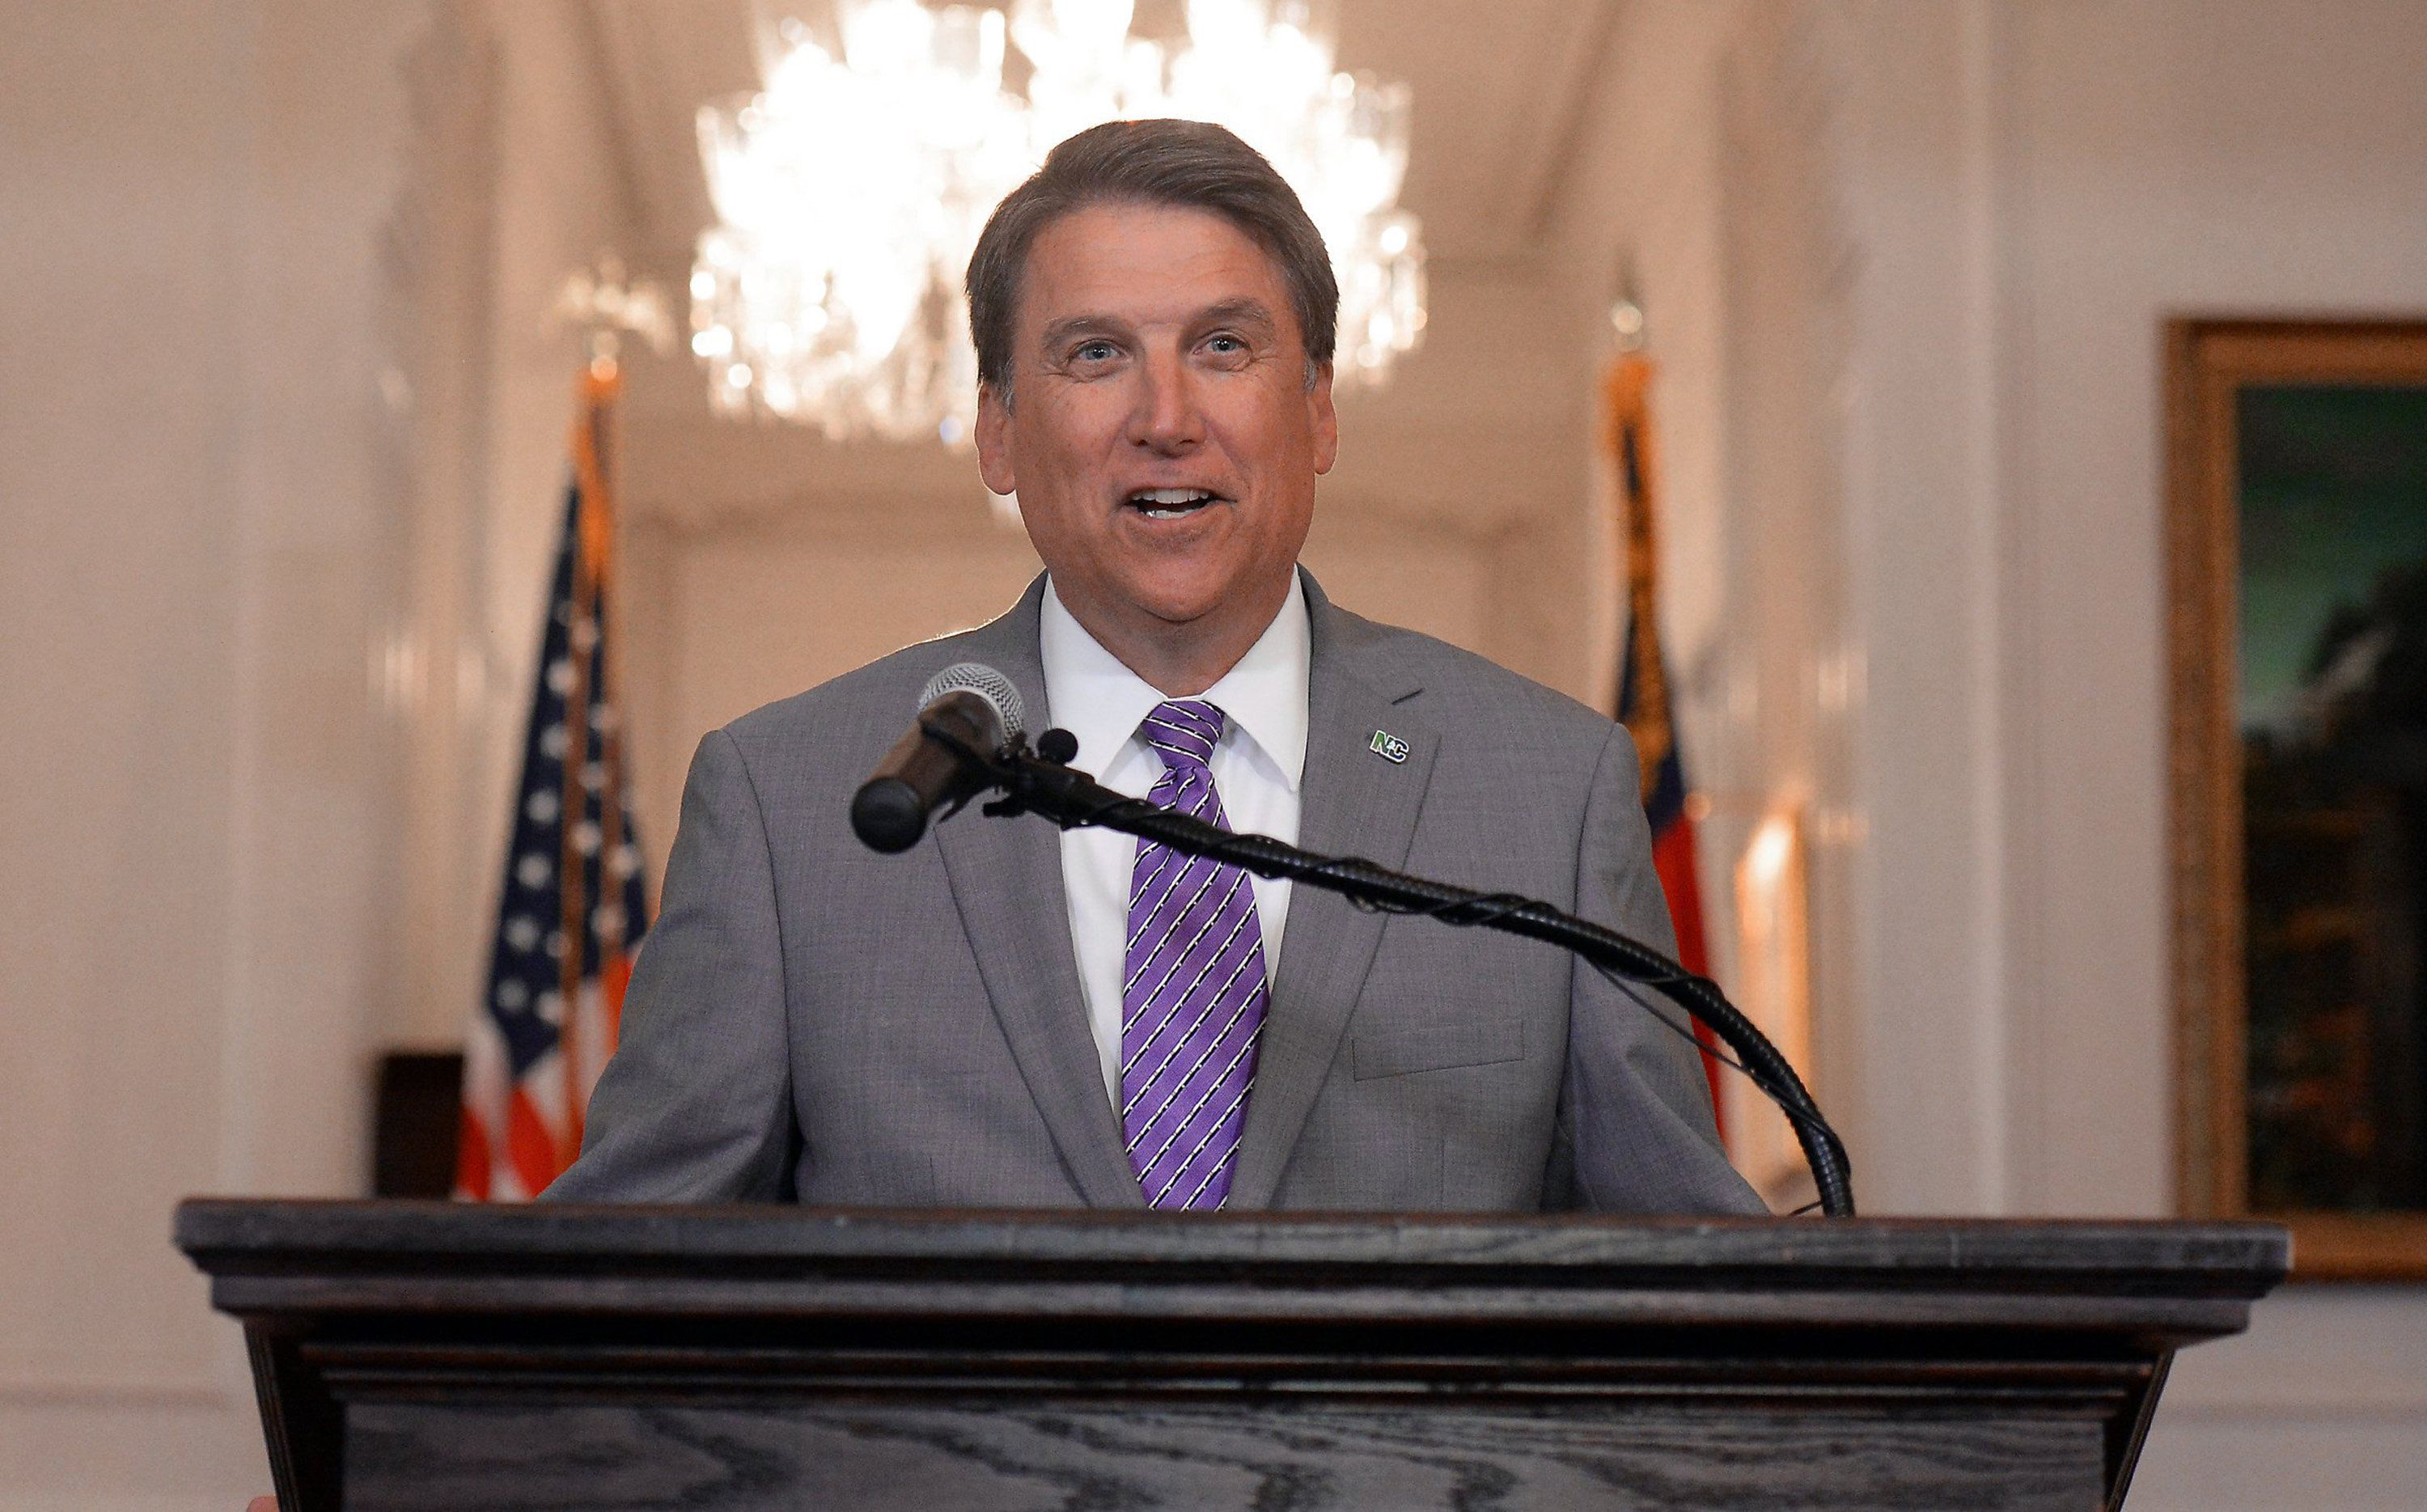 N.C. Gov. Pat McCrory speaks to the media Monday, May 9, 2016. He was announcing he has filed a lawsuit asking a federal court to determine that the controversial House Bill 2 is not illegally discriminatory. (Chuck Liddy/Raleigh News & Observer/TNS via Getty Images)